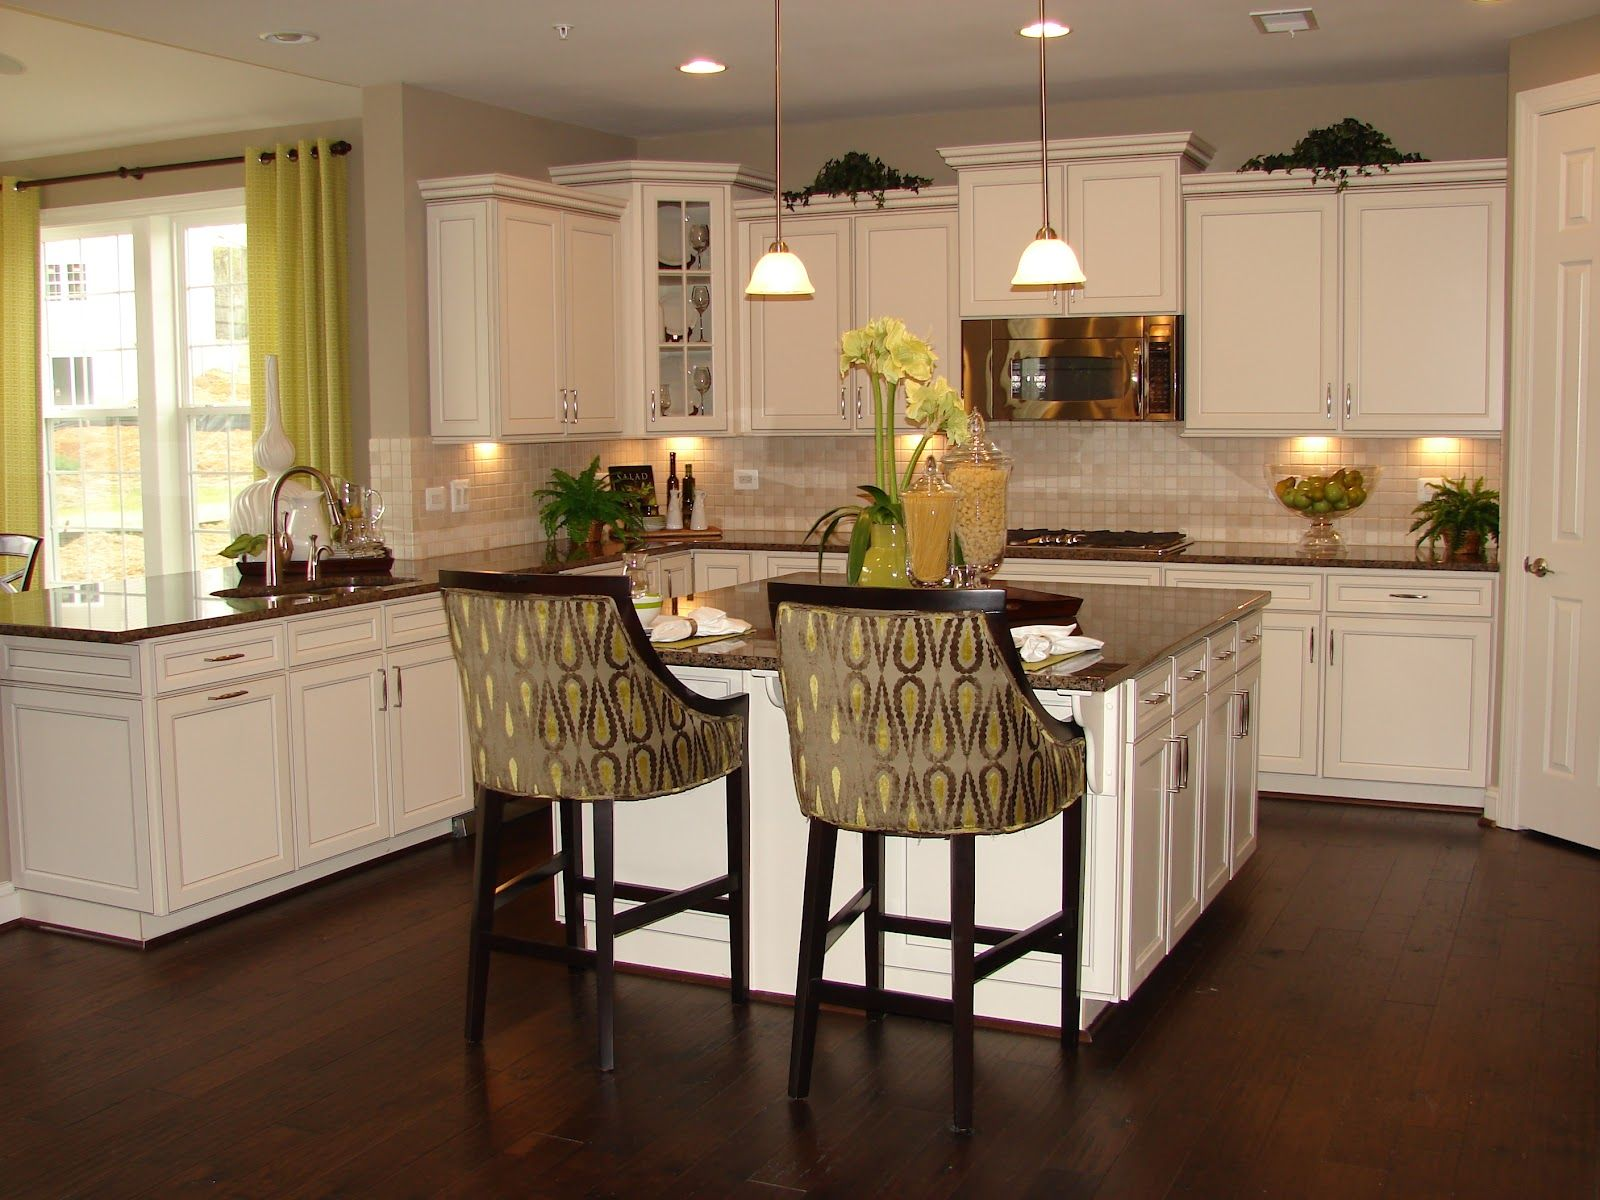 Pictures Of Kitchens With White Cabinets  This Is My Dream Pleasing Kitchen Design Richmond Inspiration Design